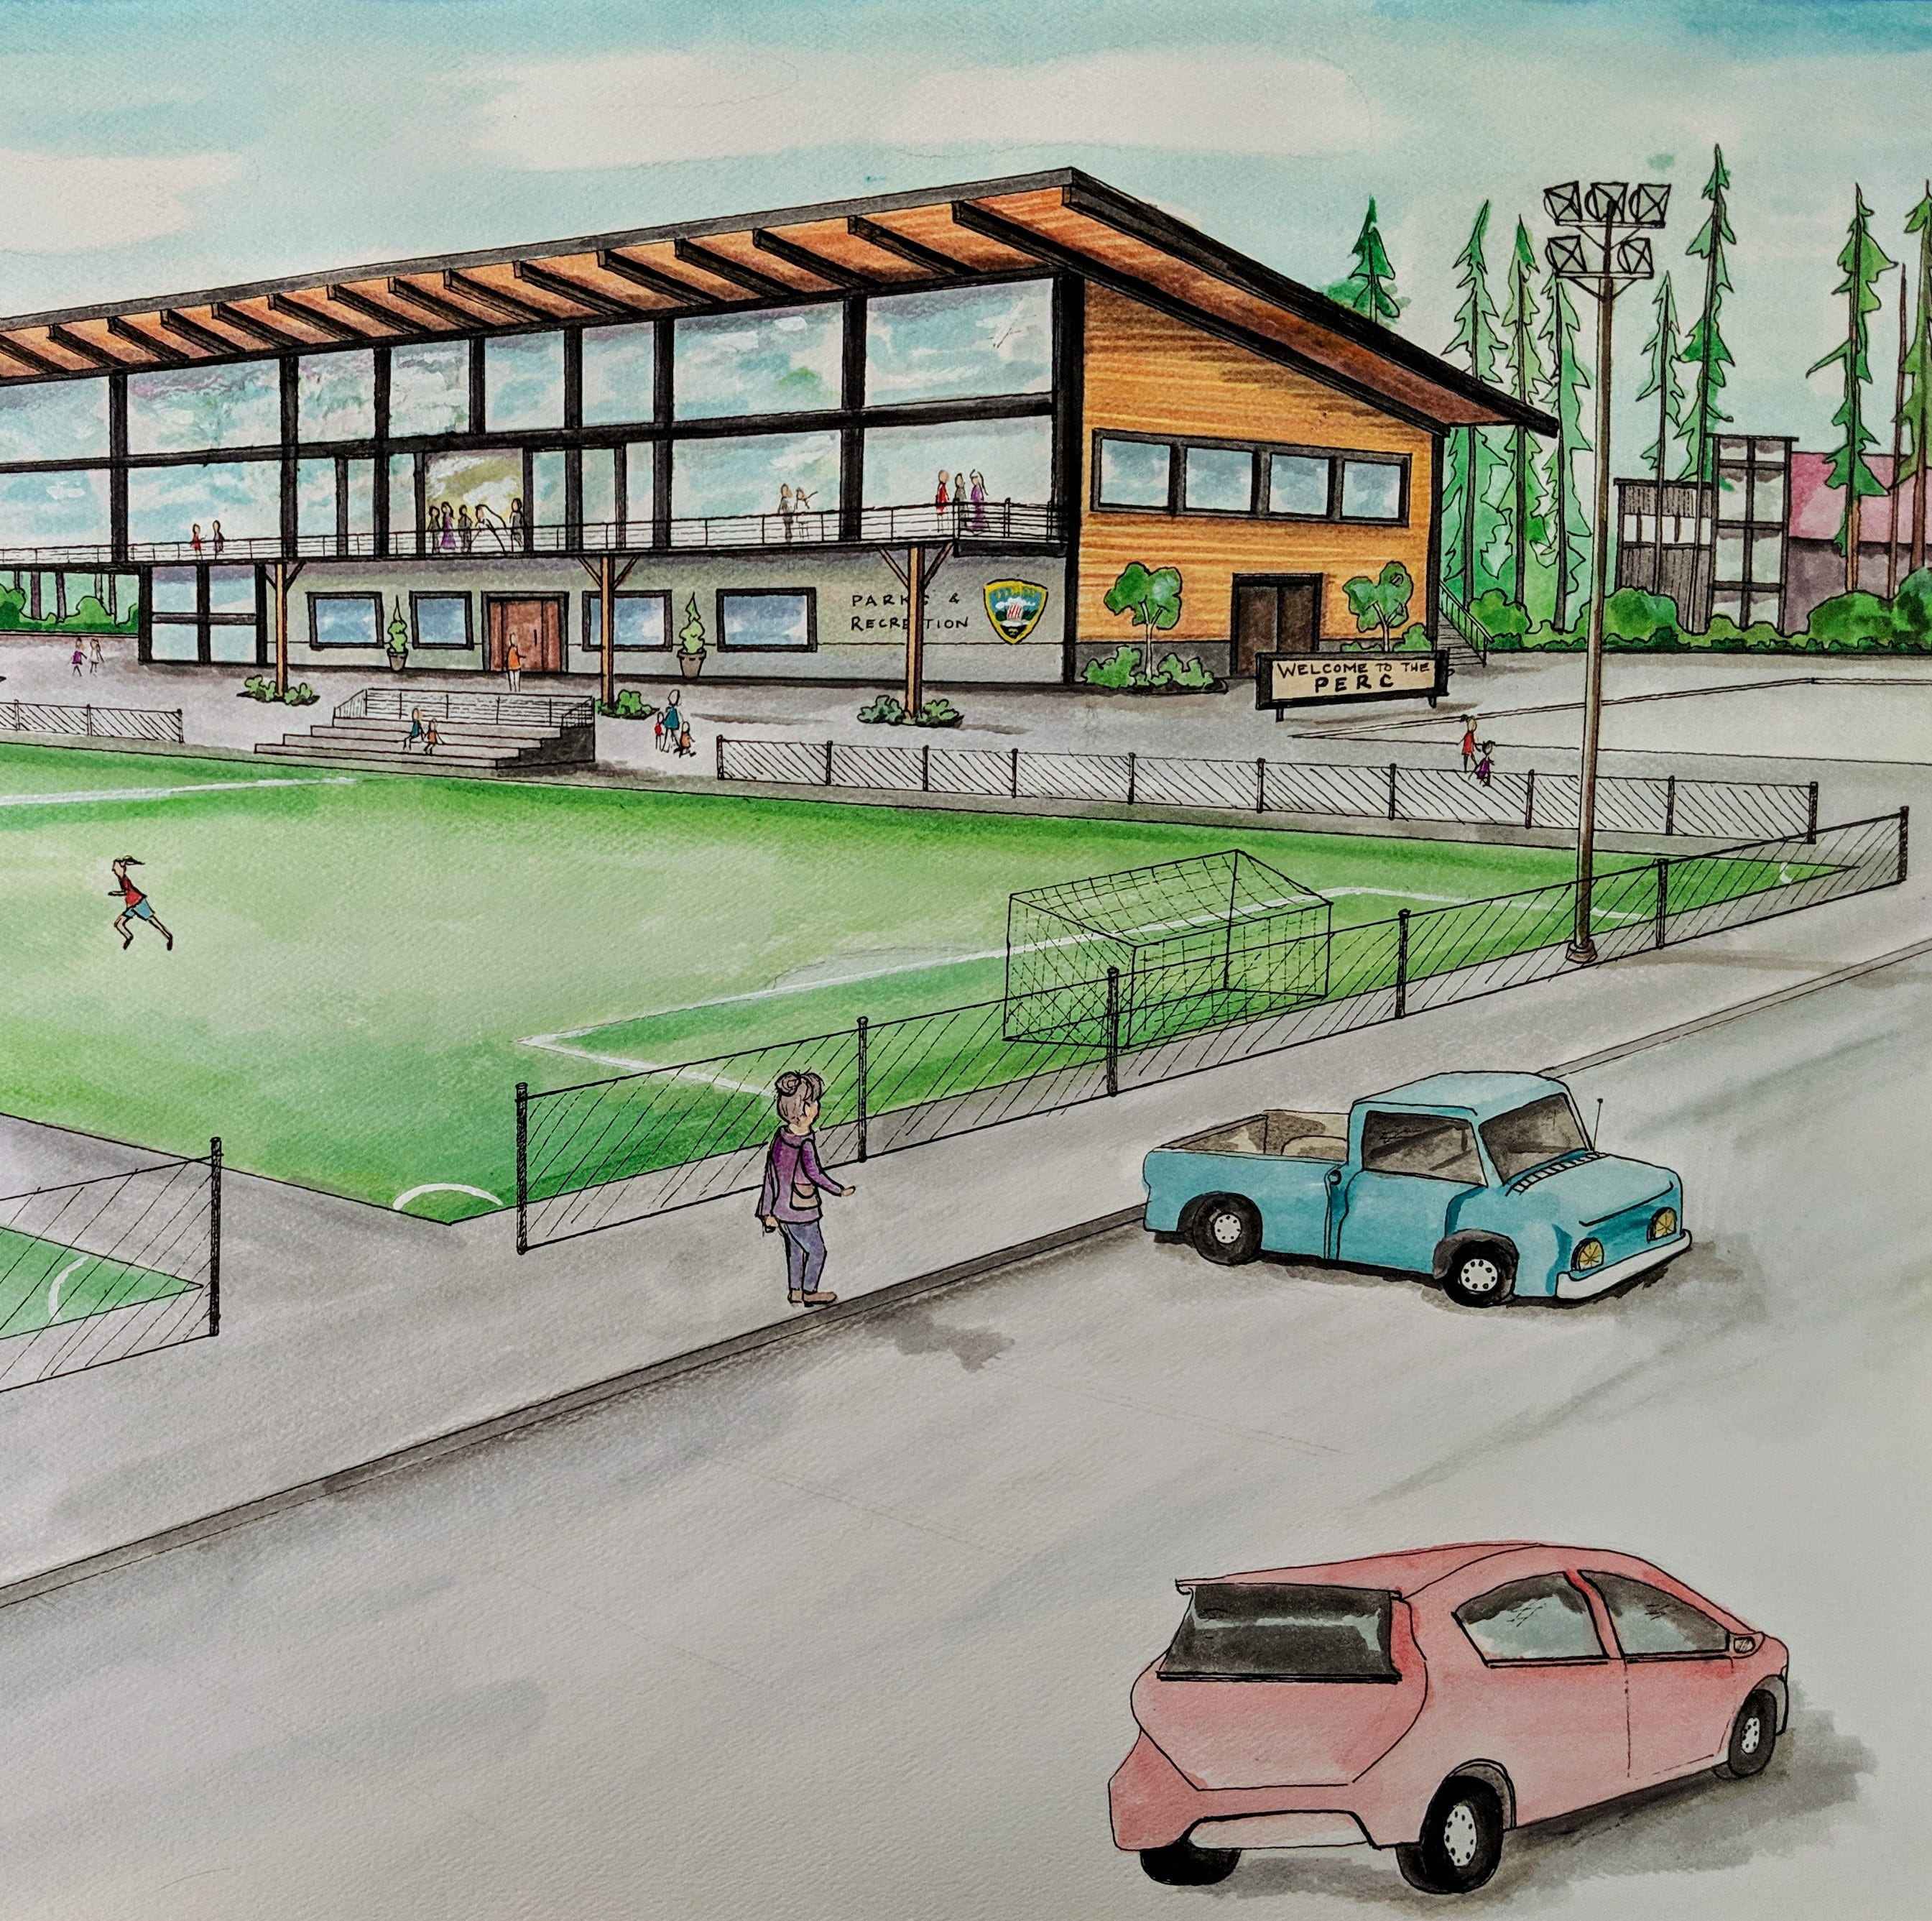 Poulsbo envisions $20 million event center in College Marketplace